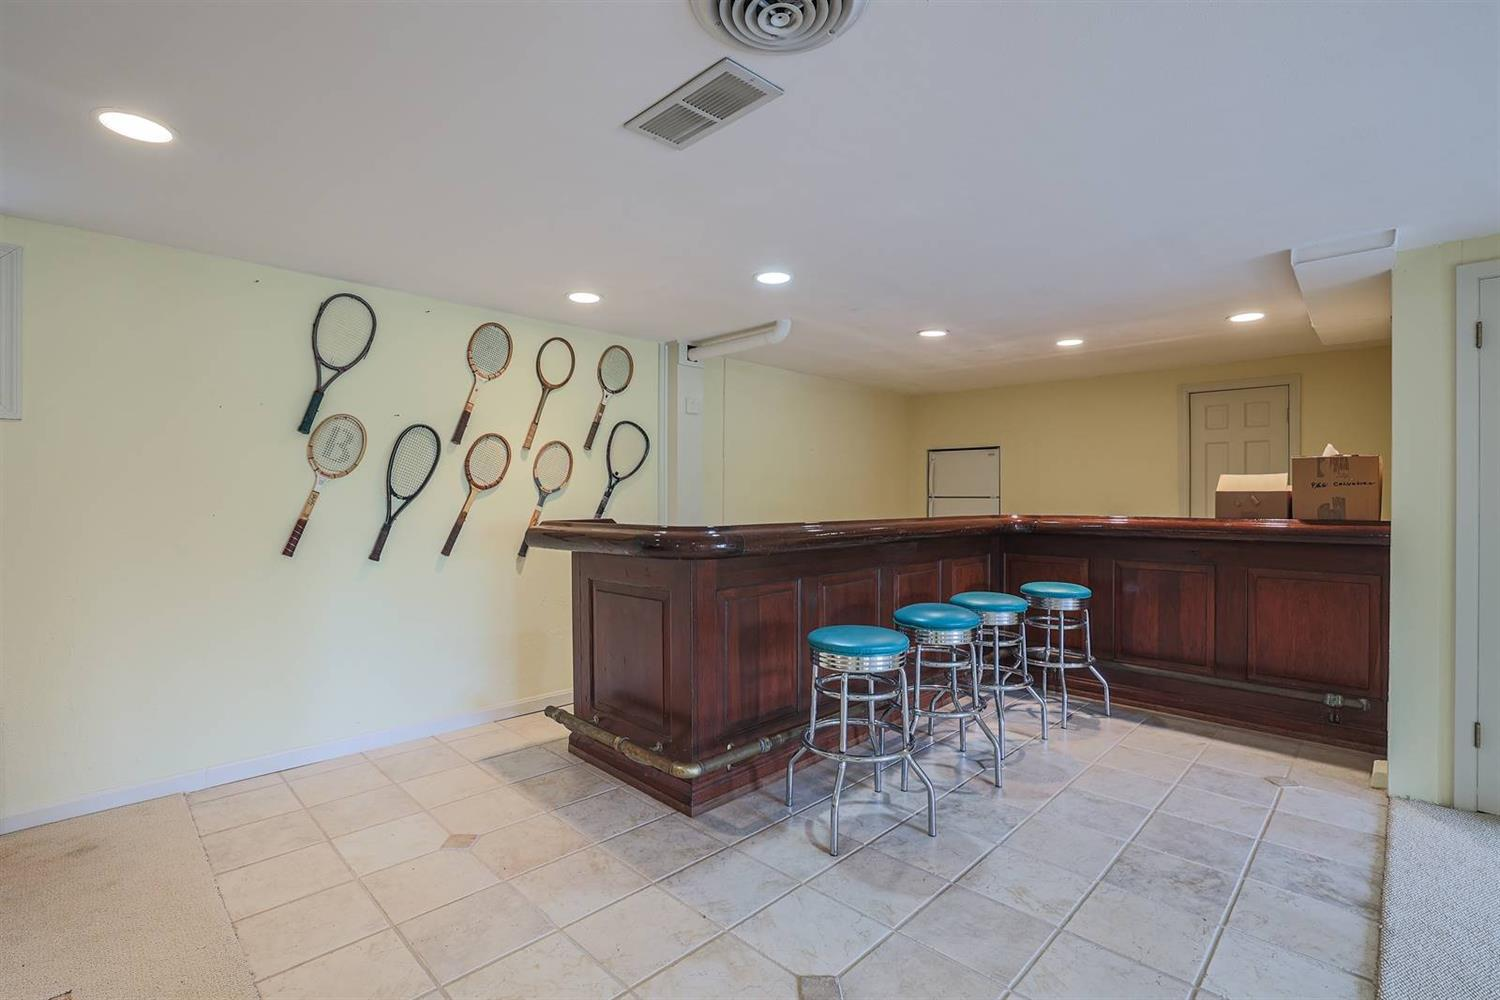 8000 Blome Road Property Photo 29